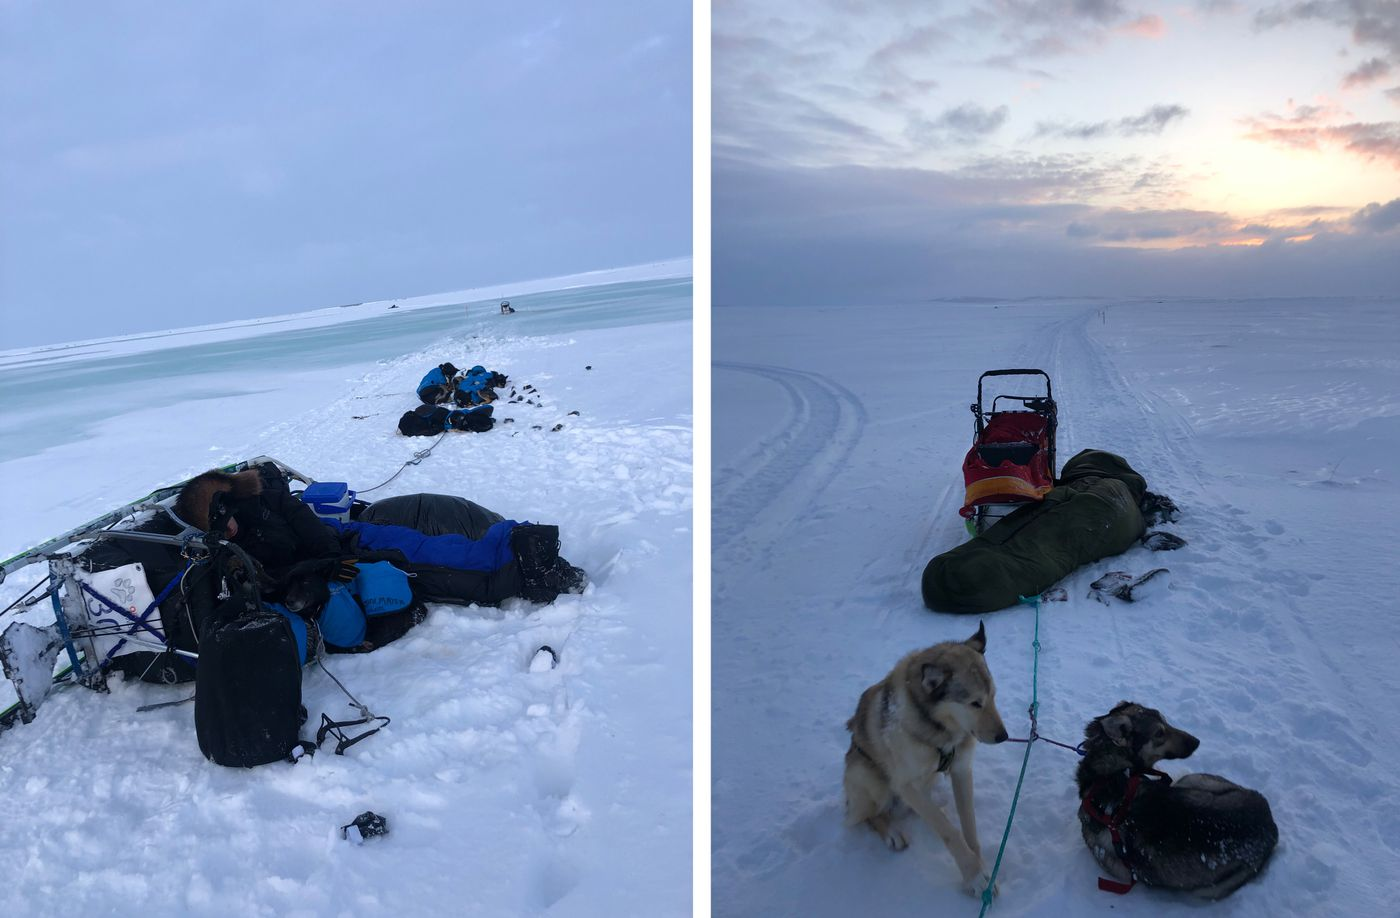 Two photos by Kailyn Fittsporter show the area near Solomon River where rescuers located Tom Knolmayer, Matt Failor and Sean Underwood during Iditarod 2020 on March 20, 2020. Overflow is visible beyond Knolmayer in photo at left. Underwood sleeps by his sled at right. (Kailyn Fittsporter photos)